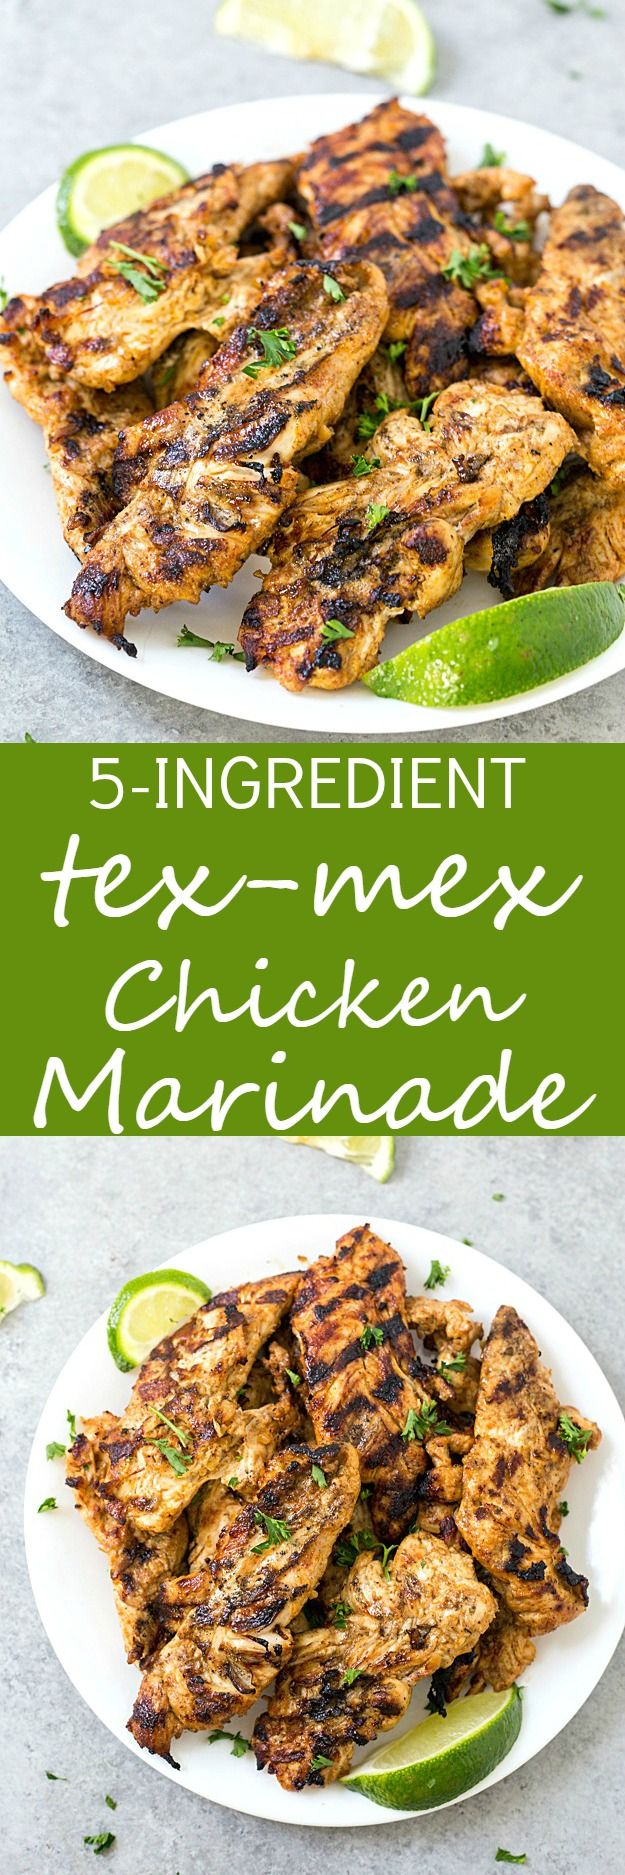 5-Ingredient Tex-Mex Chicken Marinade - The absolutely best chicken marinade with only 5 ingredients! This marinade produces so much flavor and keeps the chicken incredibly moist. Perfect for salads, sandwiches, you name it!  via @galmission